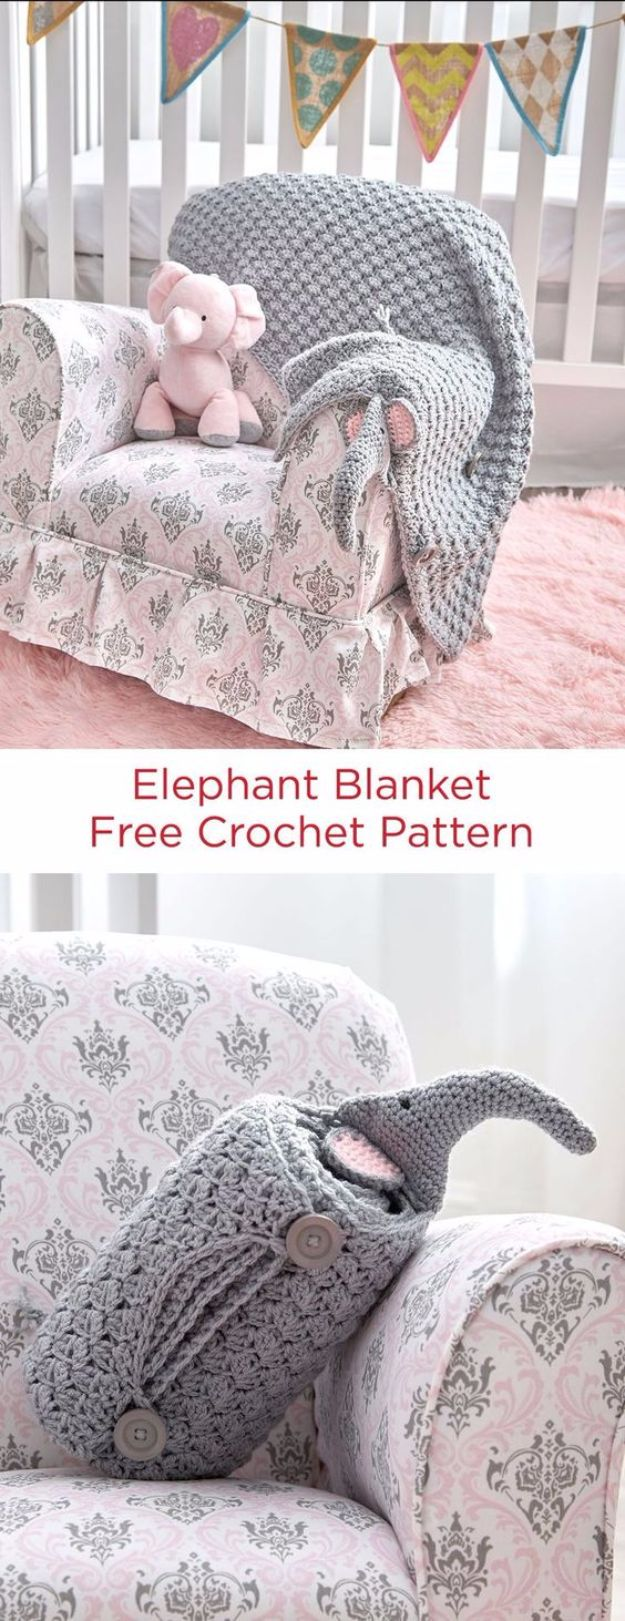 DIY Ideas With Elephants - Elephant Blanket - Easy Wall Art Ideas, Crafts, Jewelry, Arts and Craft Projects for Kids, Teens and Adults- Simple Canvases, Throw Pillows, Cute Paintings for Nurseries, Dollar Store Crafts and Fun Dorm Room and Bedroom Decor - Tutorials for Crafty Ideas Decorated With an Elephant